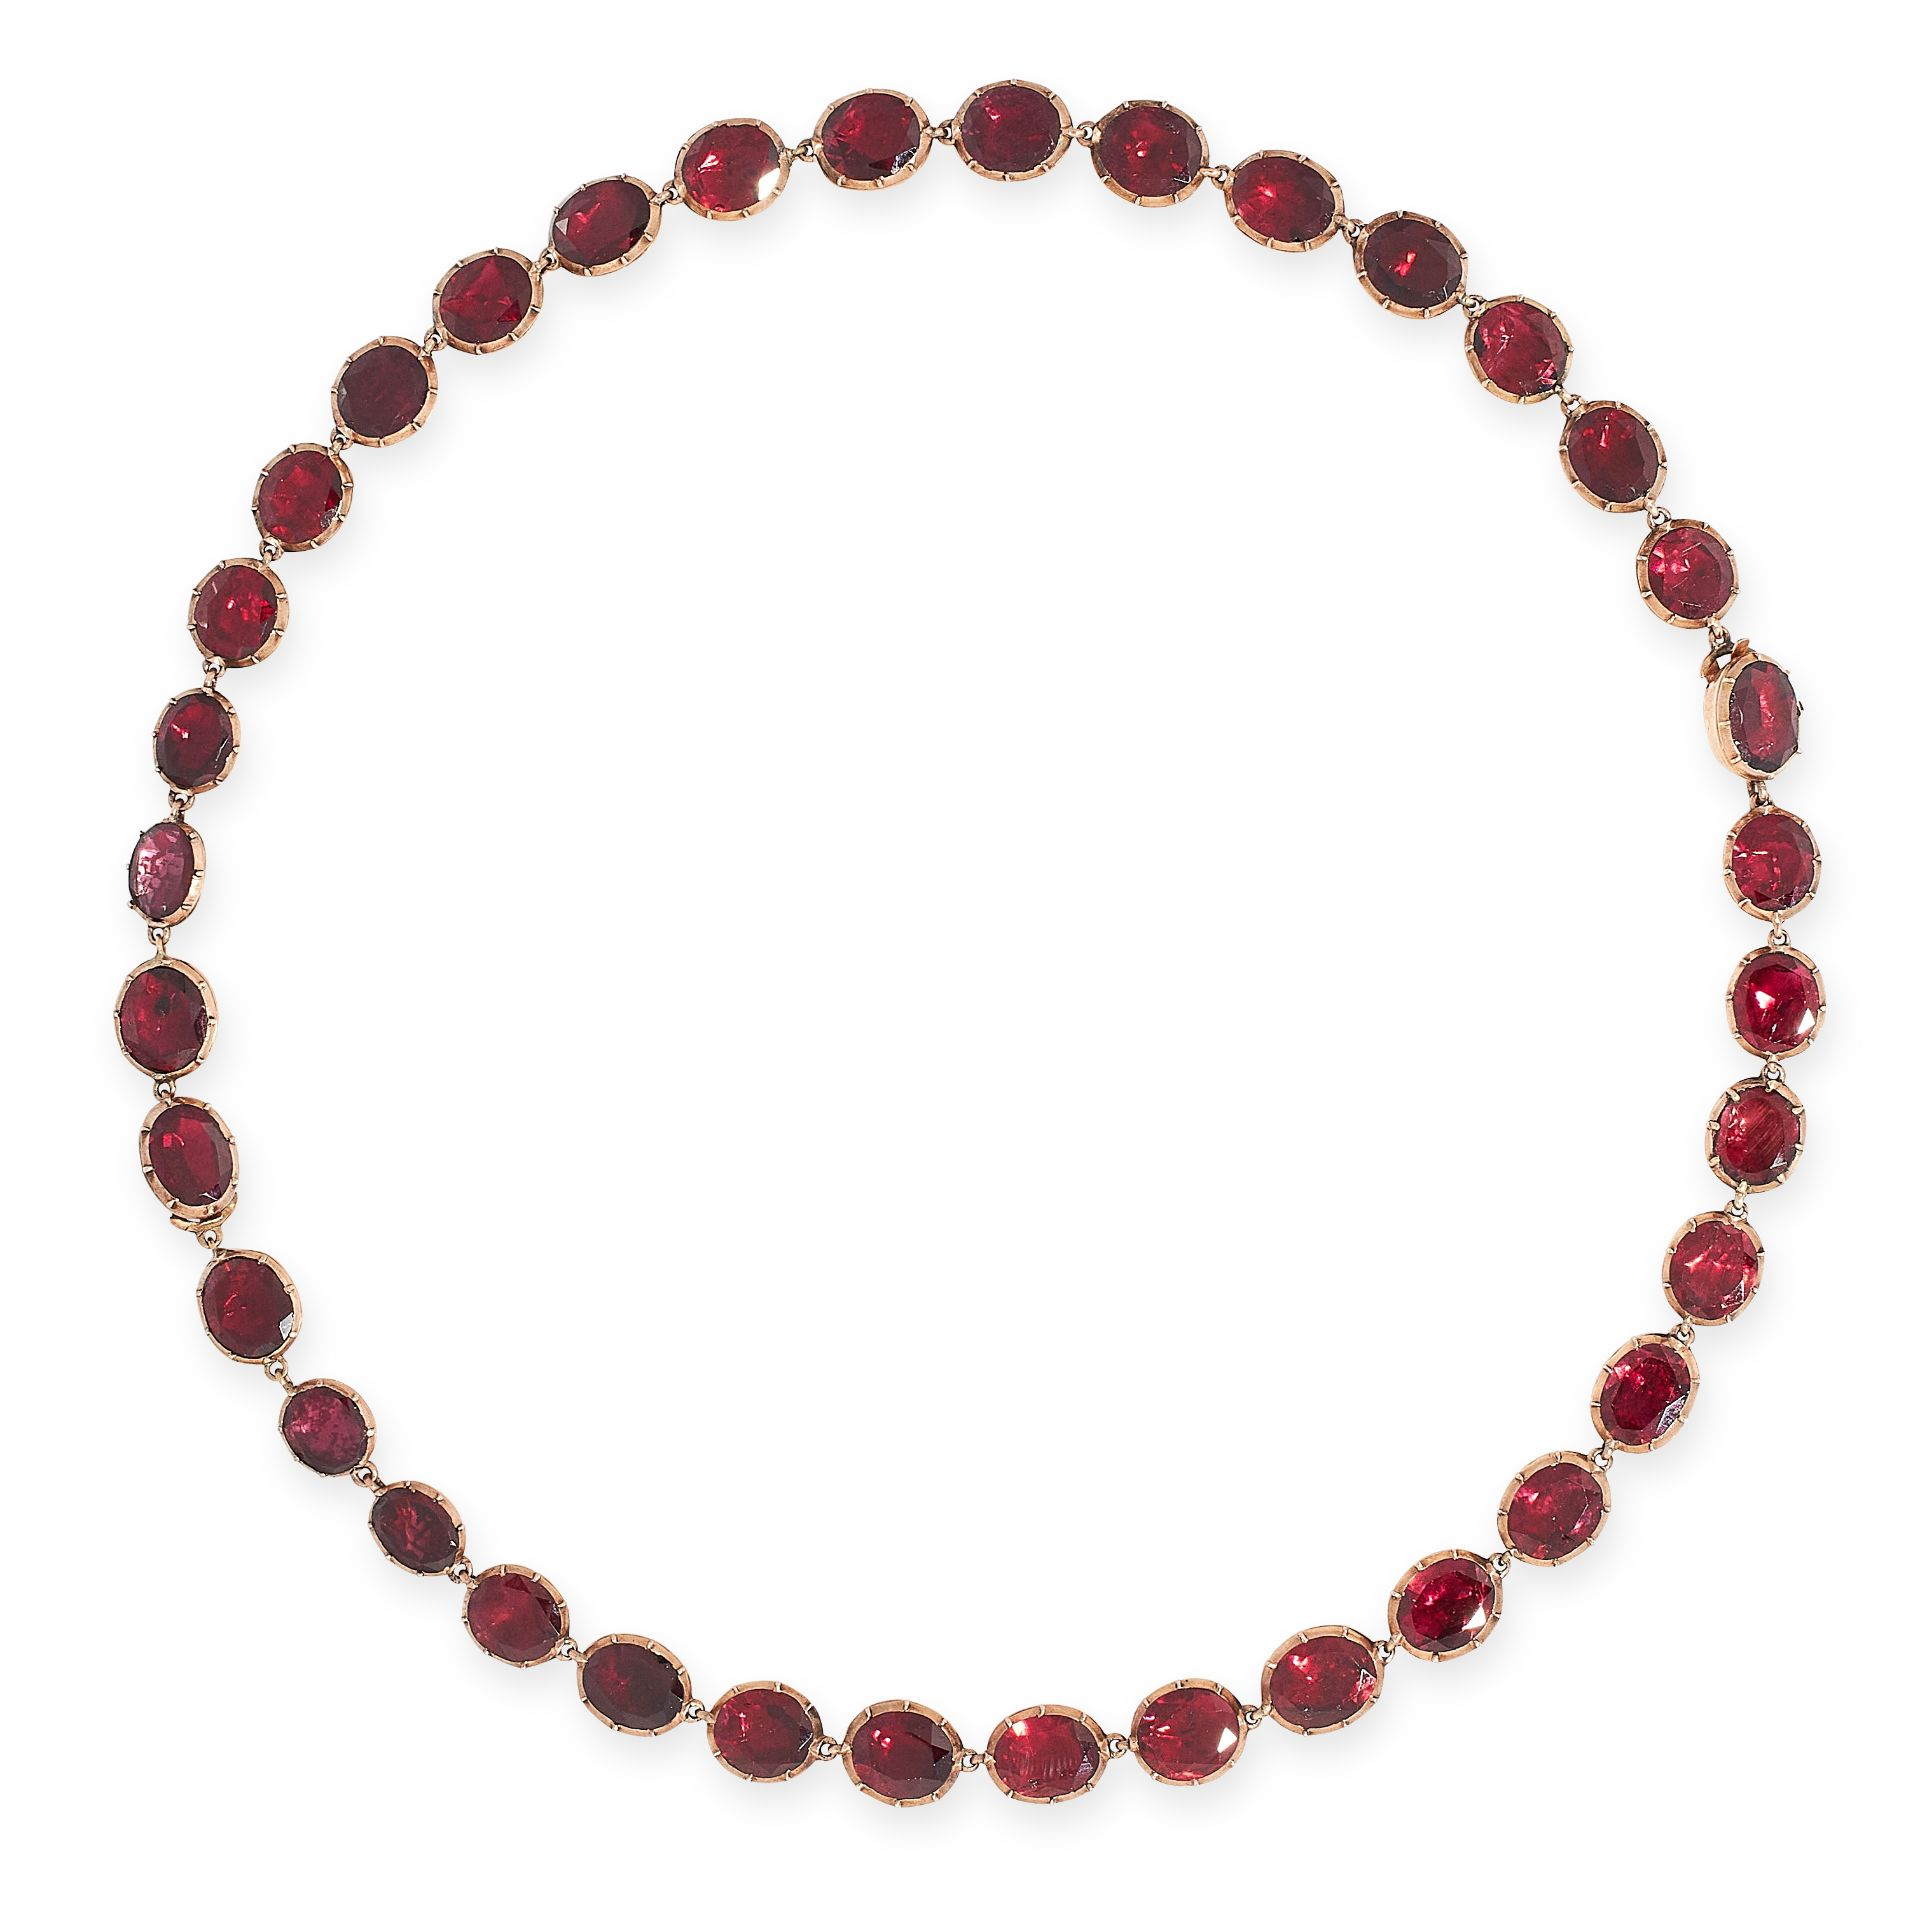 AN ANTIQUE GARNET RIVIERE NECKLACE, 19TH CENTURY in yellow gold, comprising of a single row of